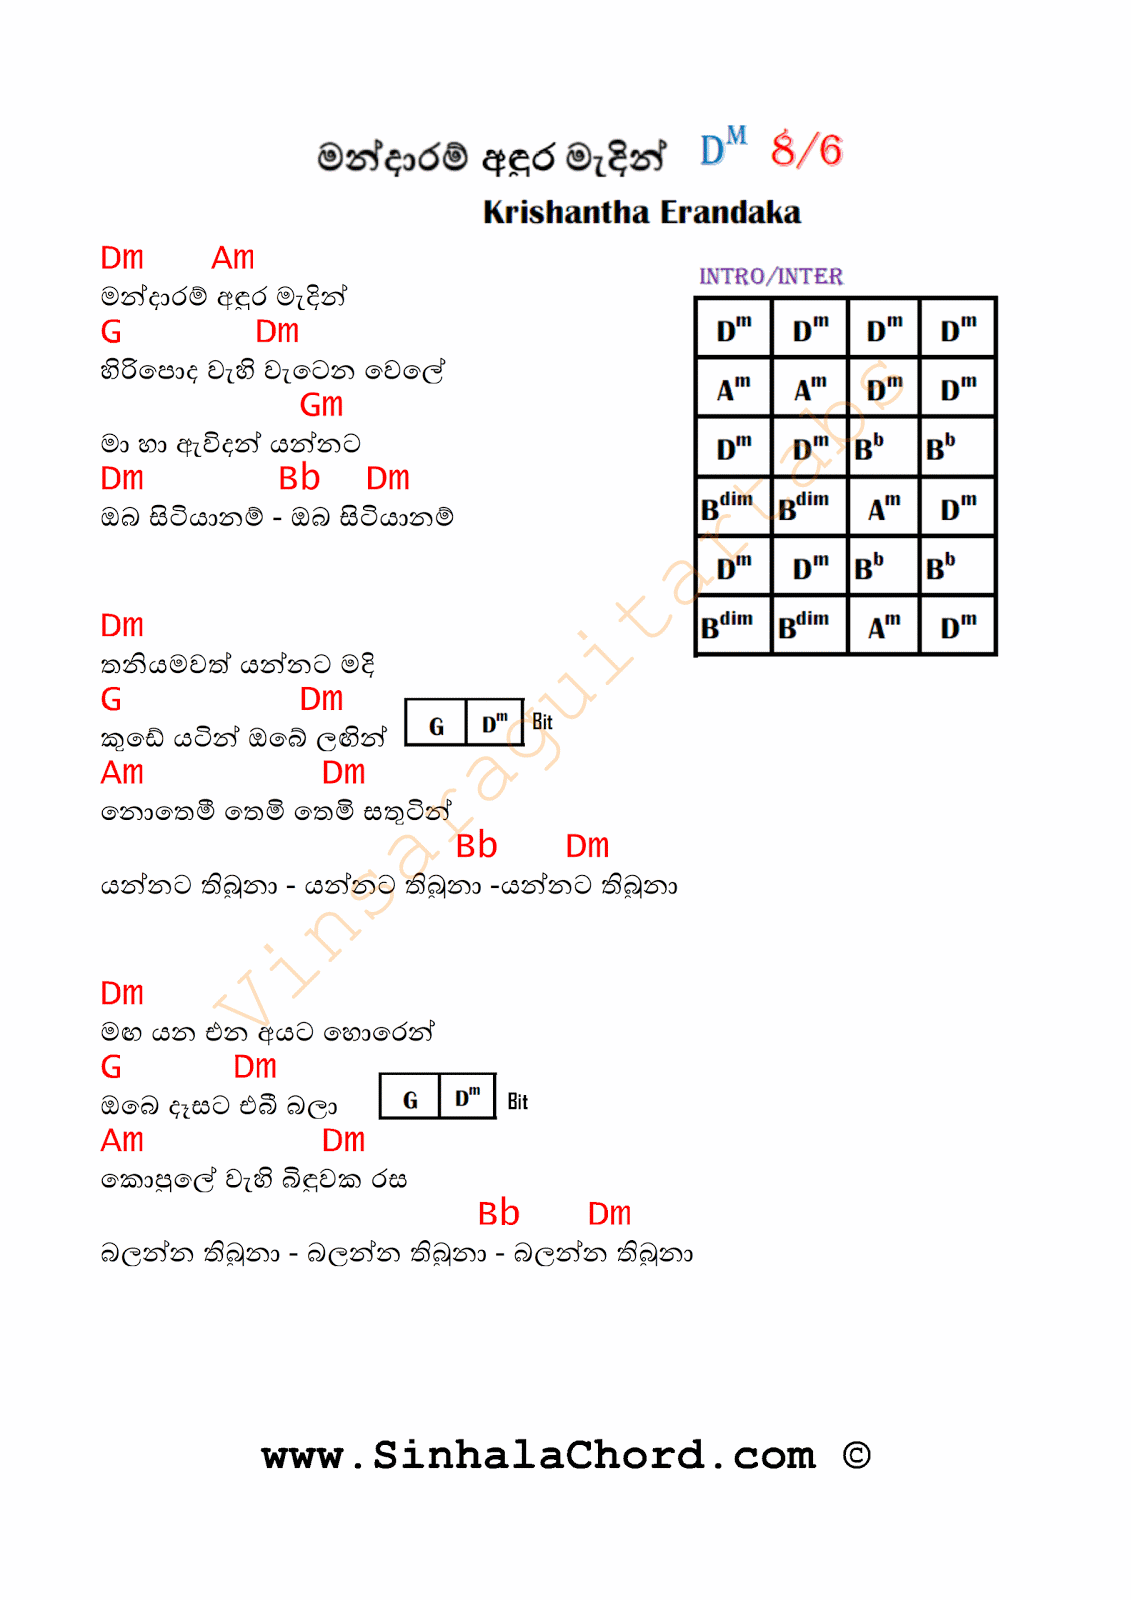 Sinhala guitar chords gallery guitar chords examples mandaram andura madin guitar chords sinhala guitar chords there are lot of ways to play b hexwebz Image collections